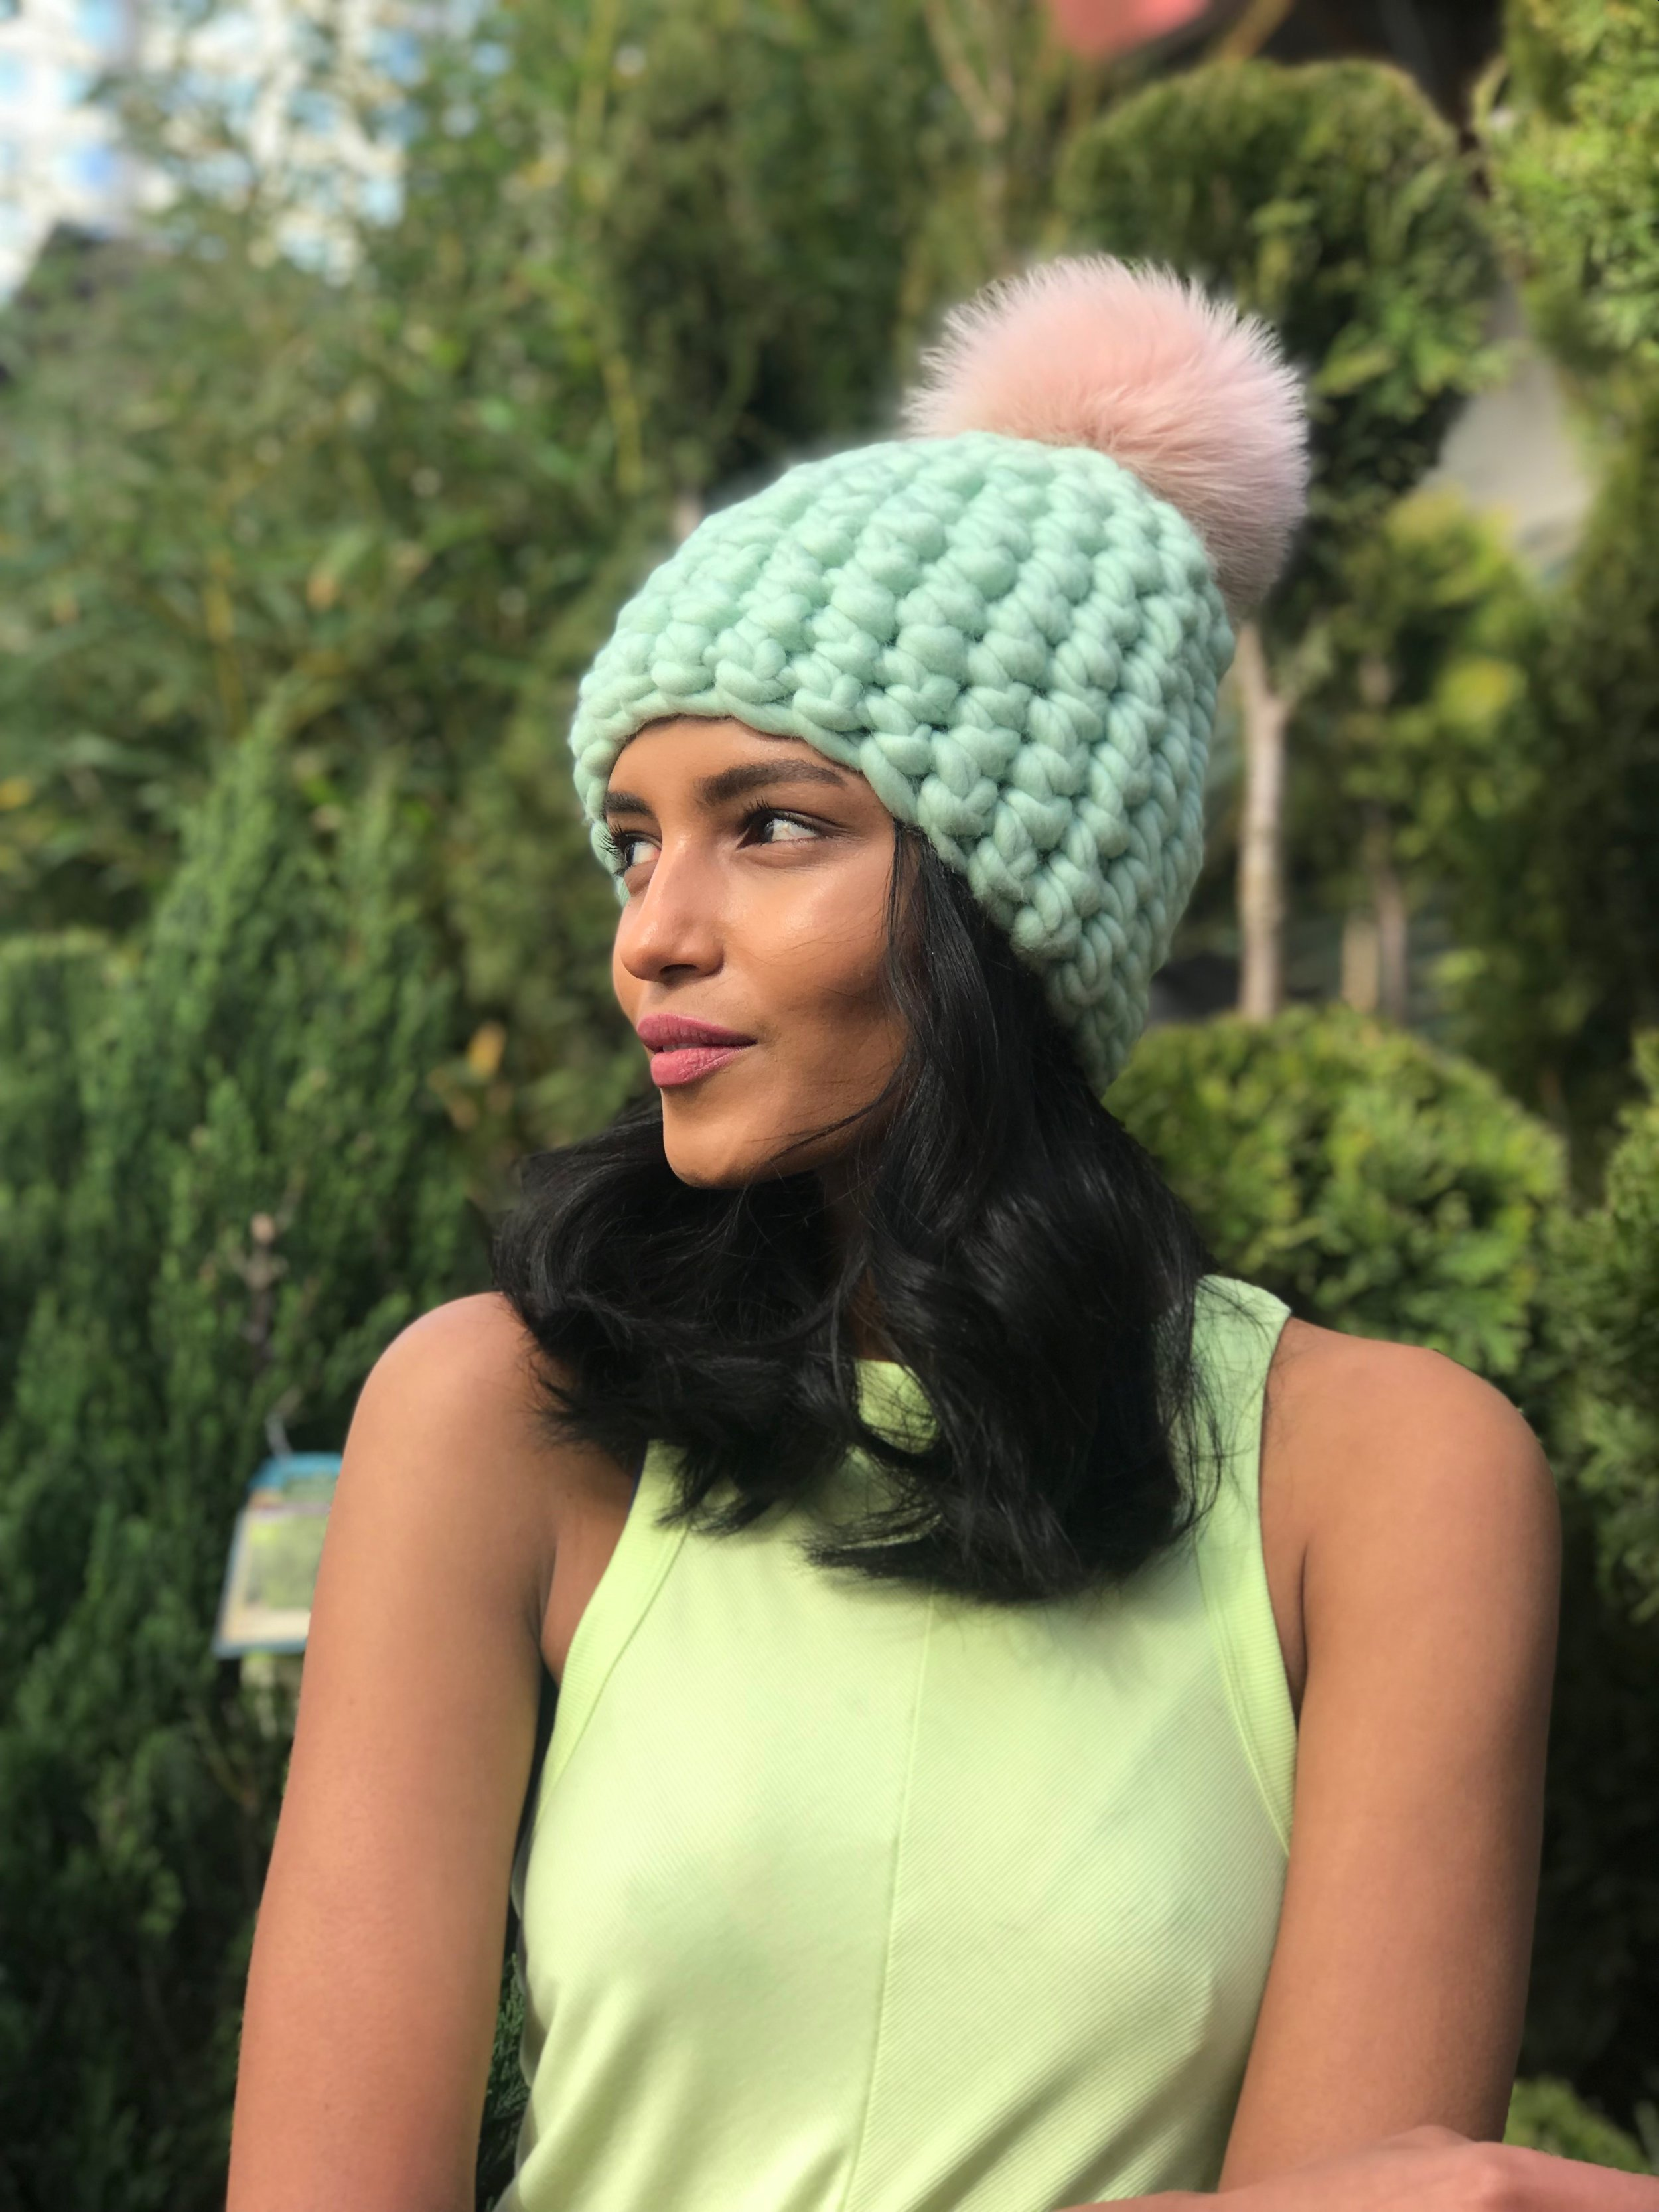 shaanti is wearing   the seafoam beanie pomster with arctic pink pom